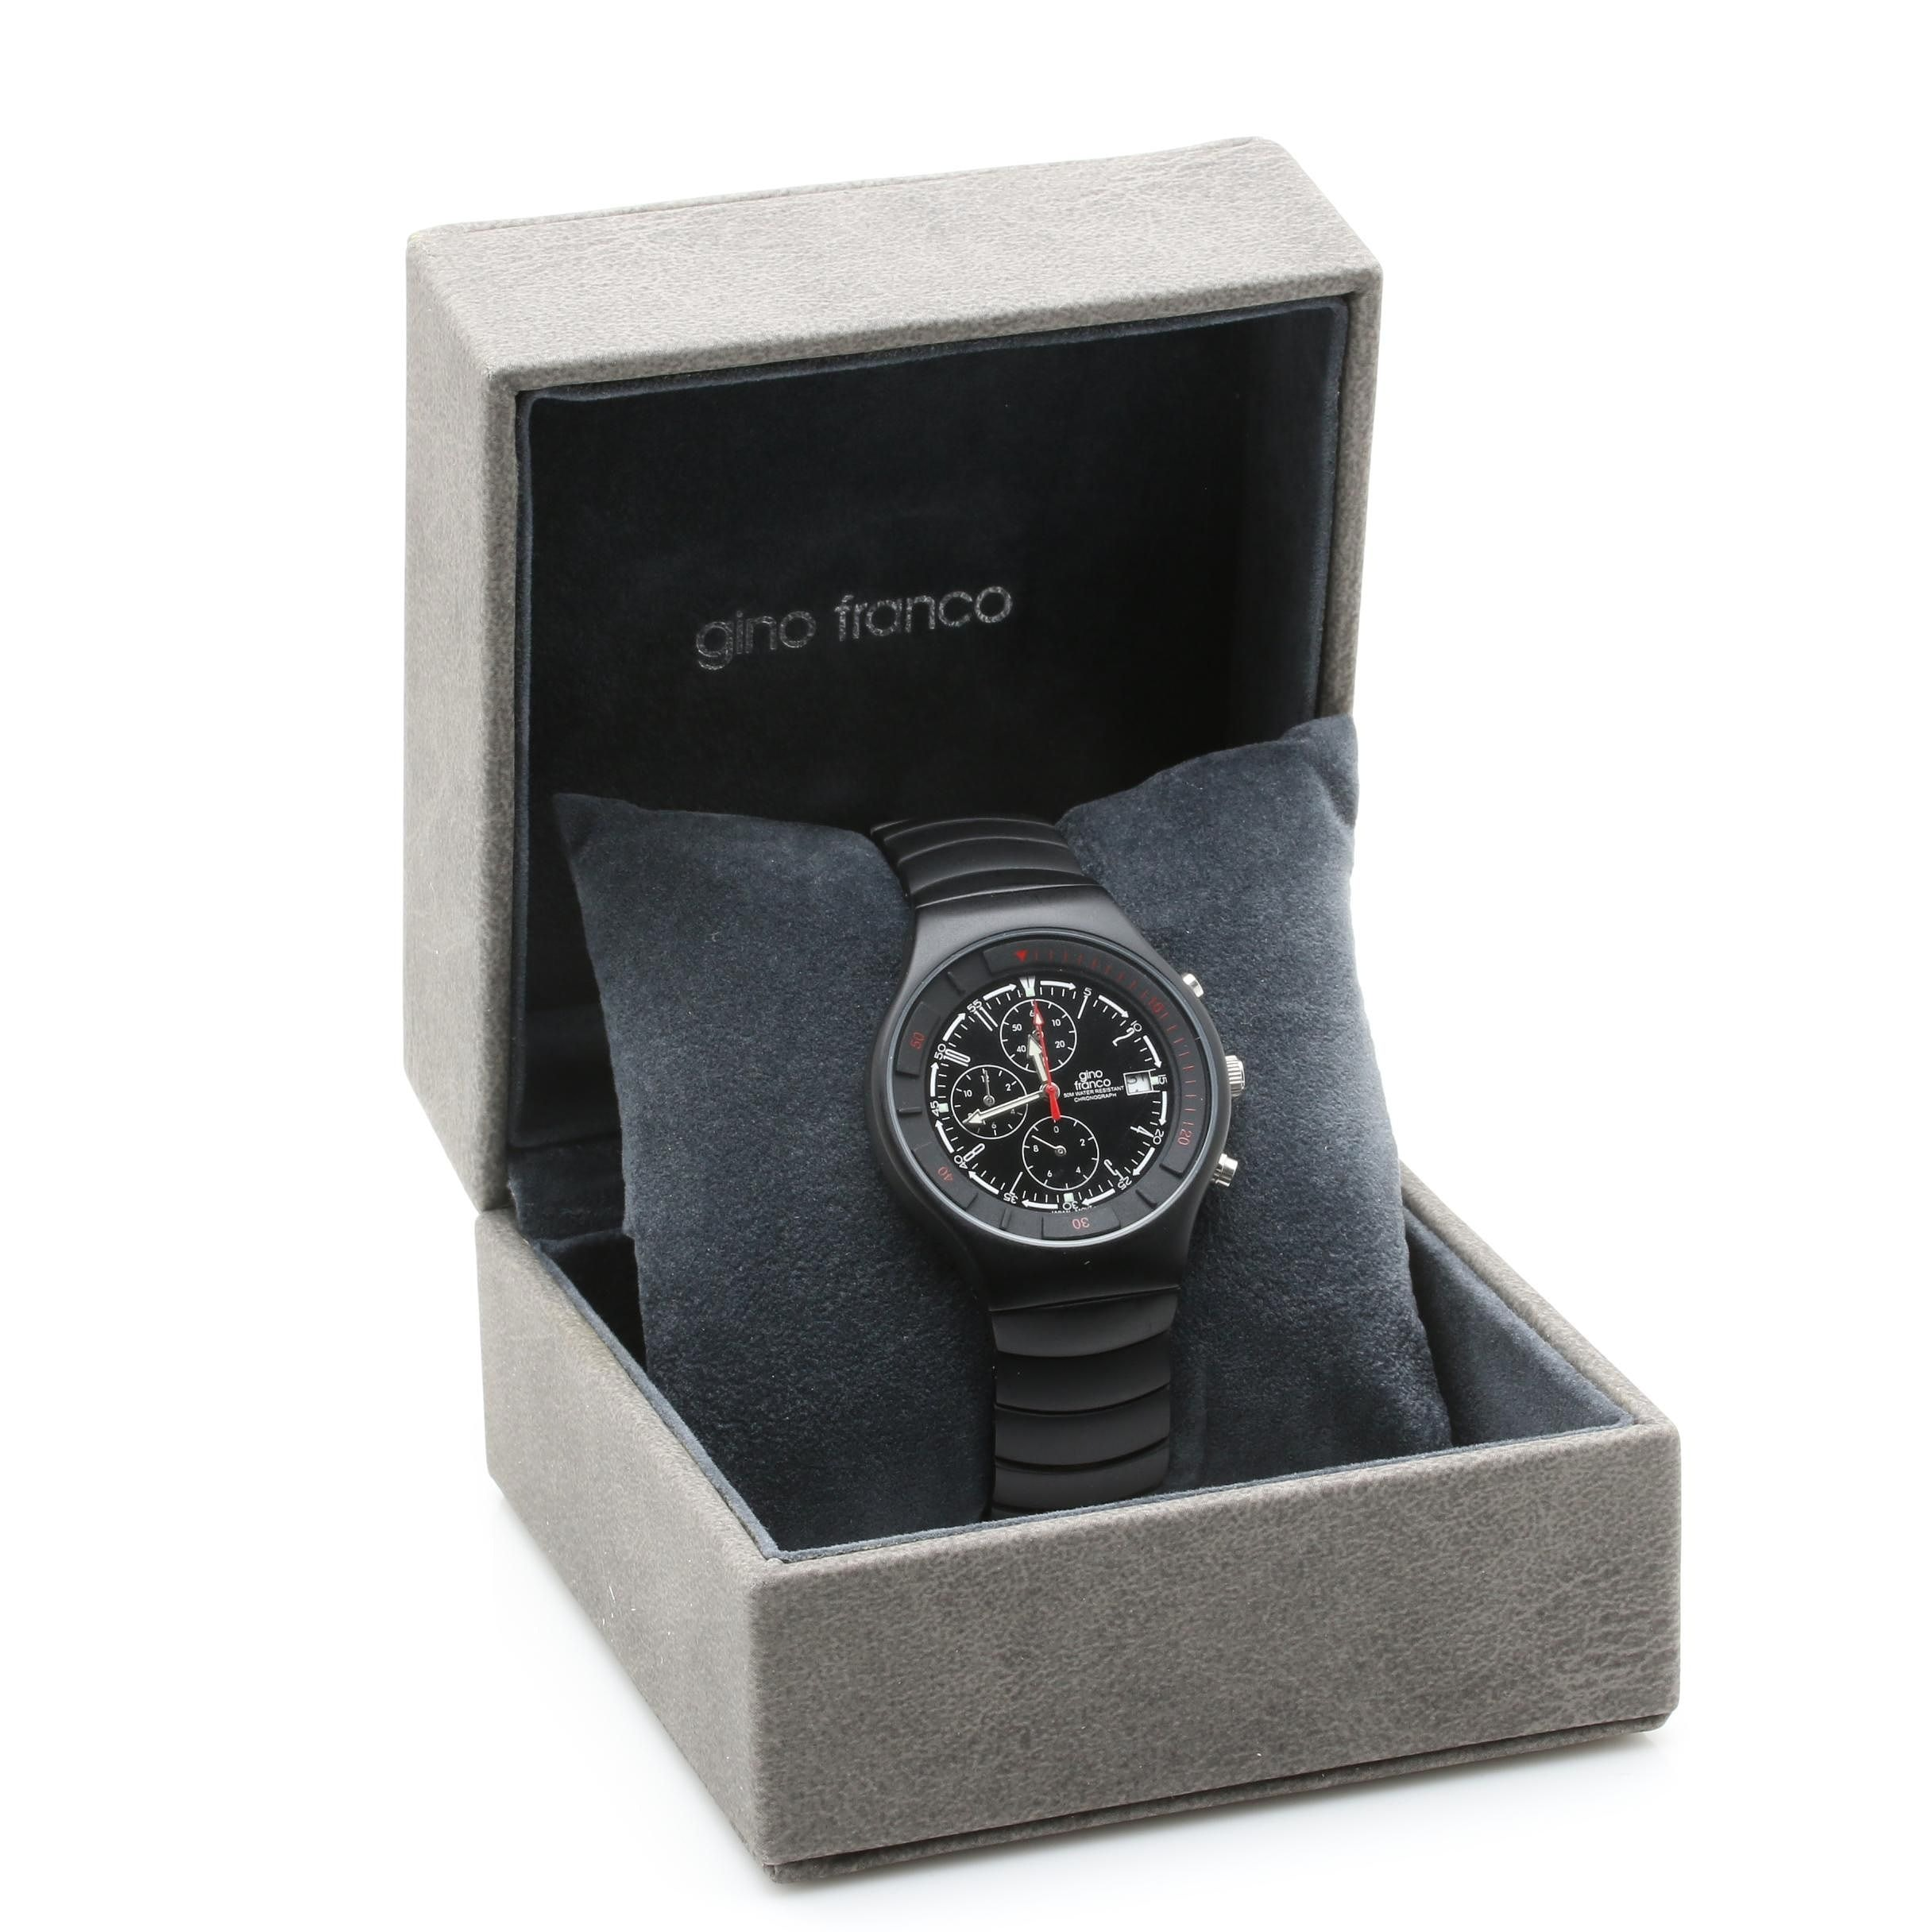 Gino Franco Black PVD-Coated Stainless Steel Black Dial Watch